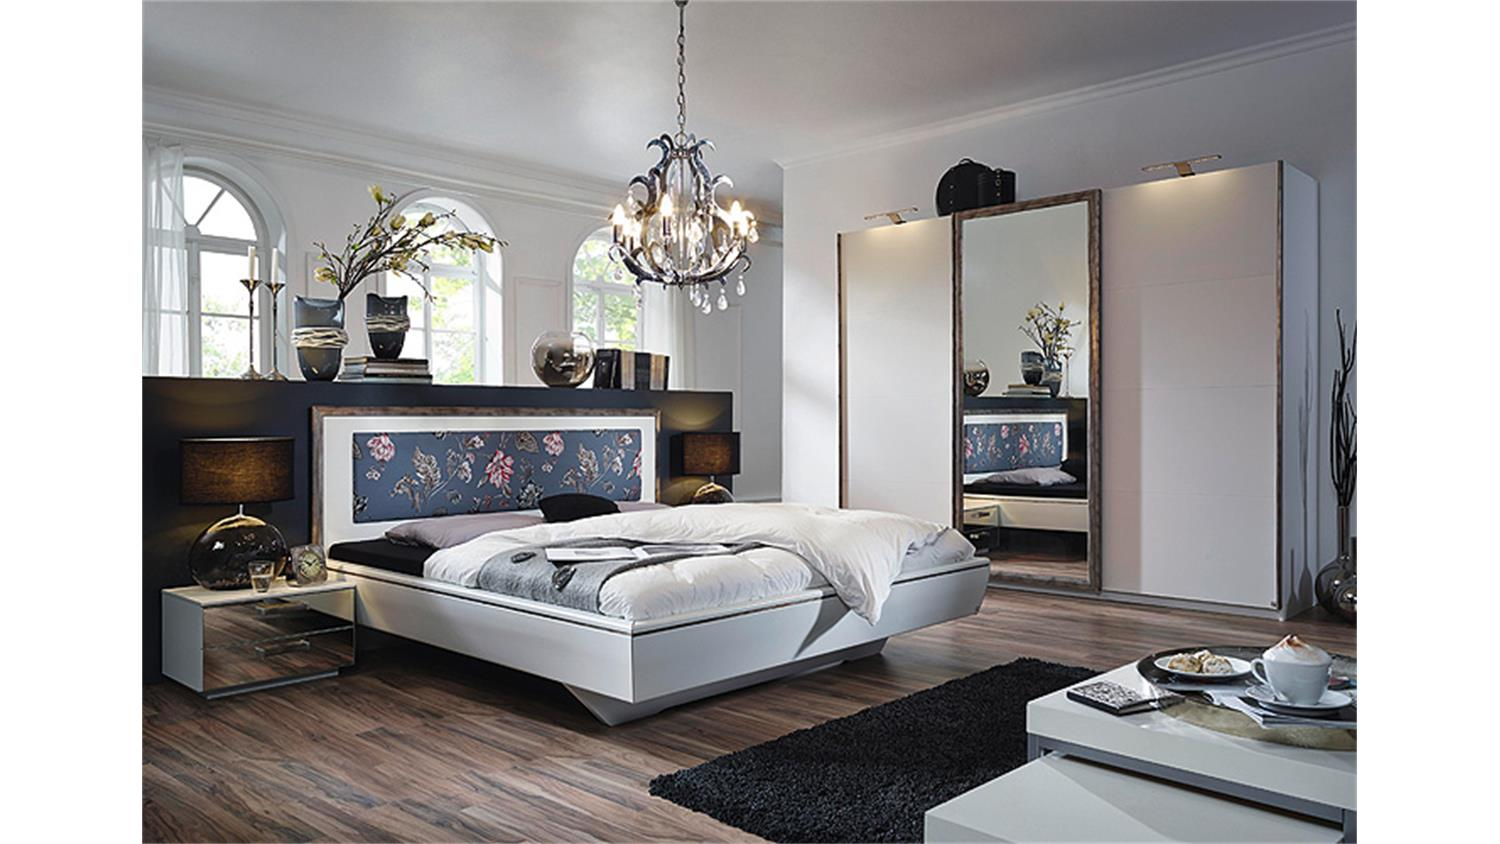 schlafzimmer ideen grau weiss heimatentwurf inspirationen. Black Bedroom Furniture Sets. Home Design Ideas